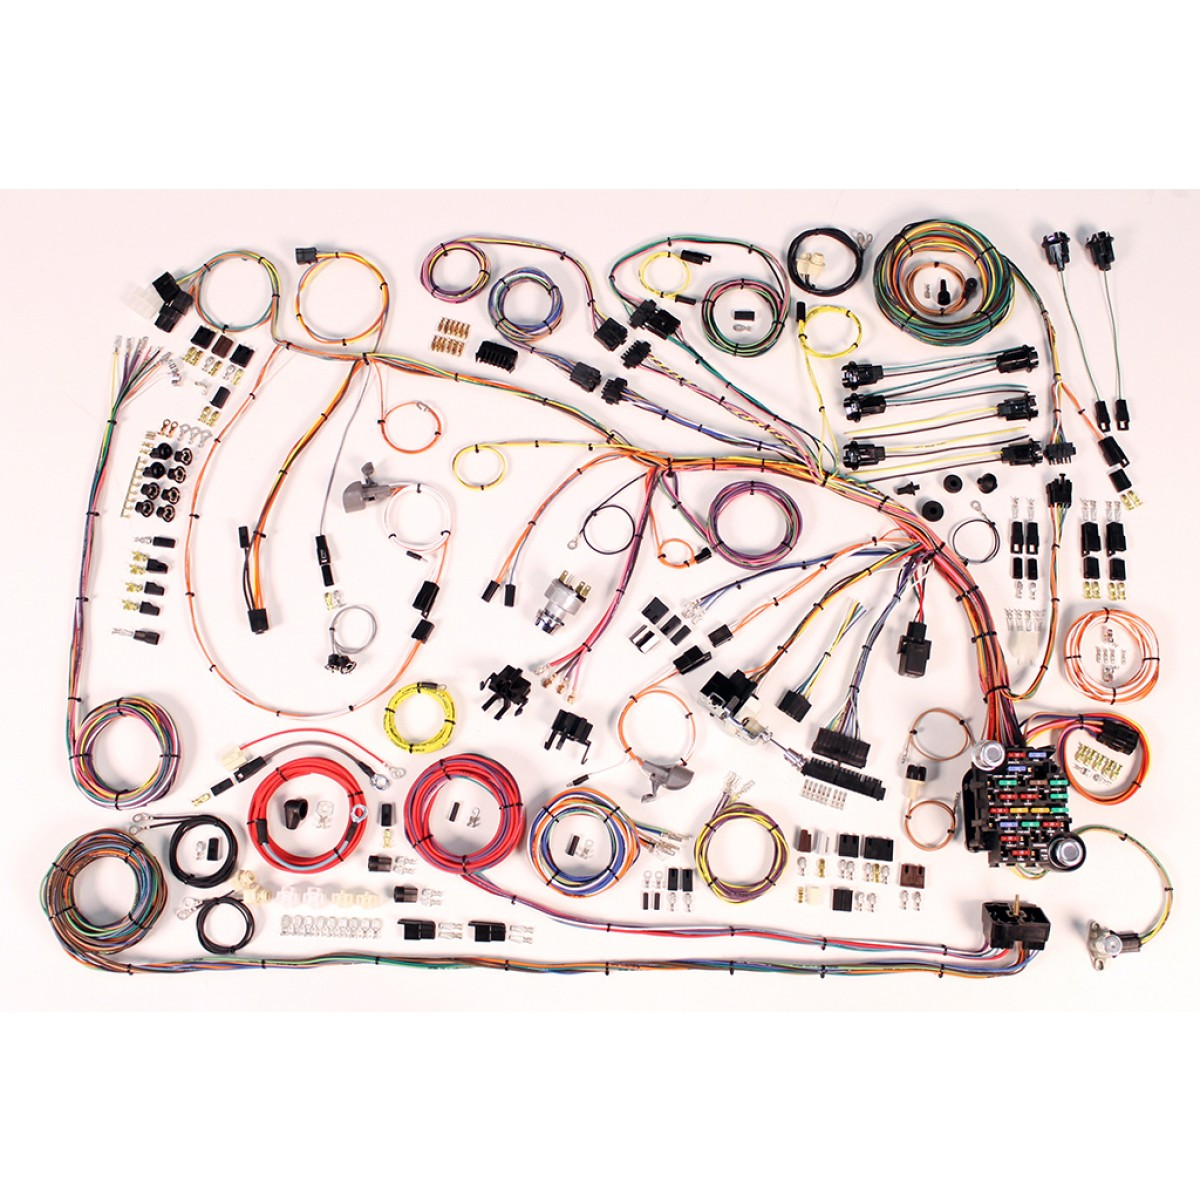 1966 1968 impala wire harness complete wiring harness kit 1966 complete wiring harness kit 1966 1968 impala part 510372